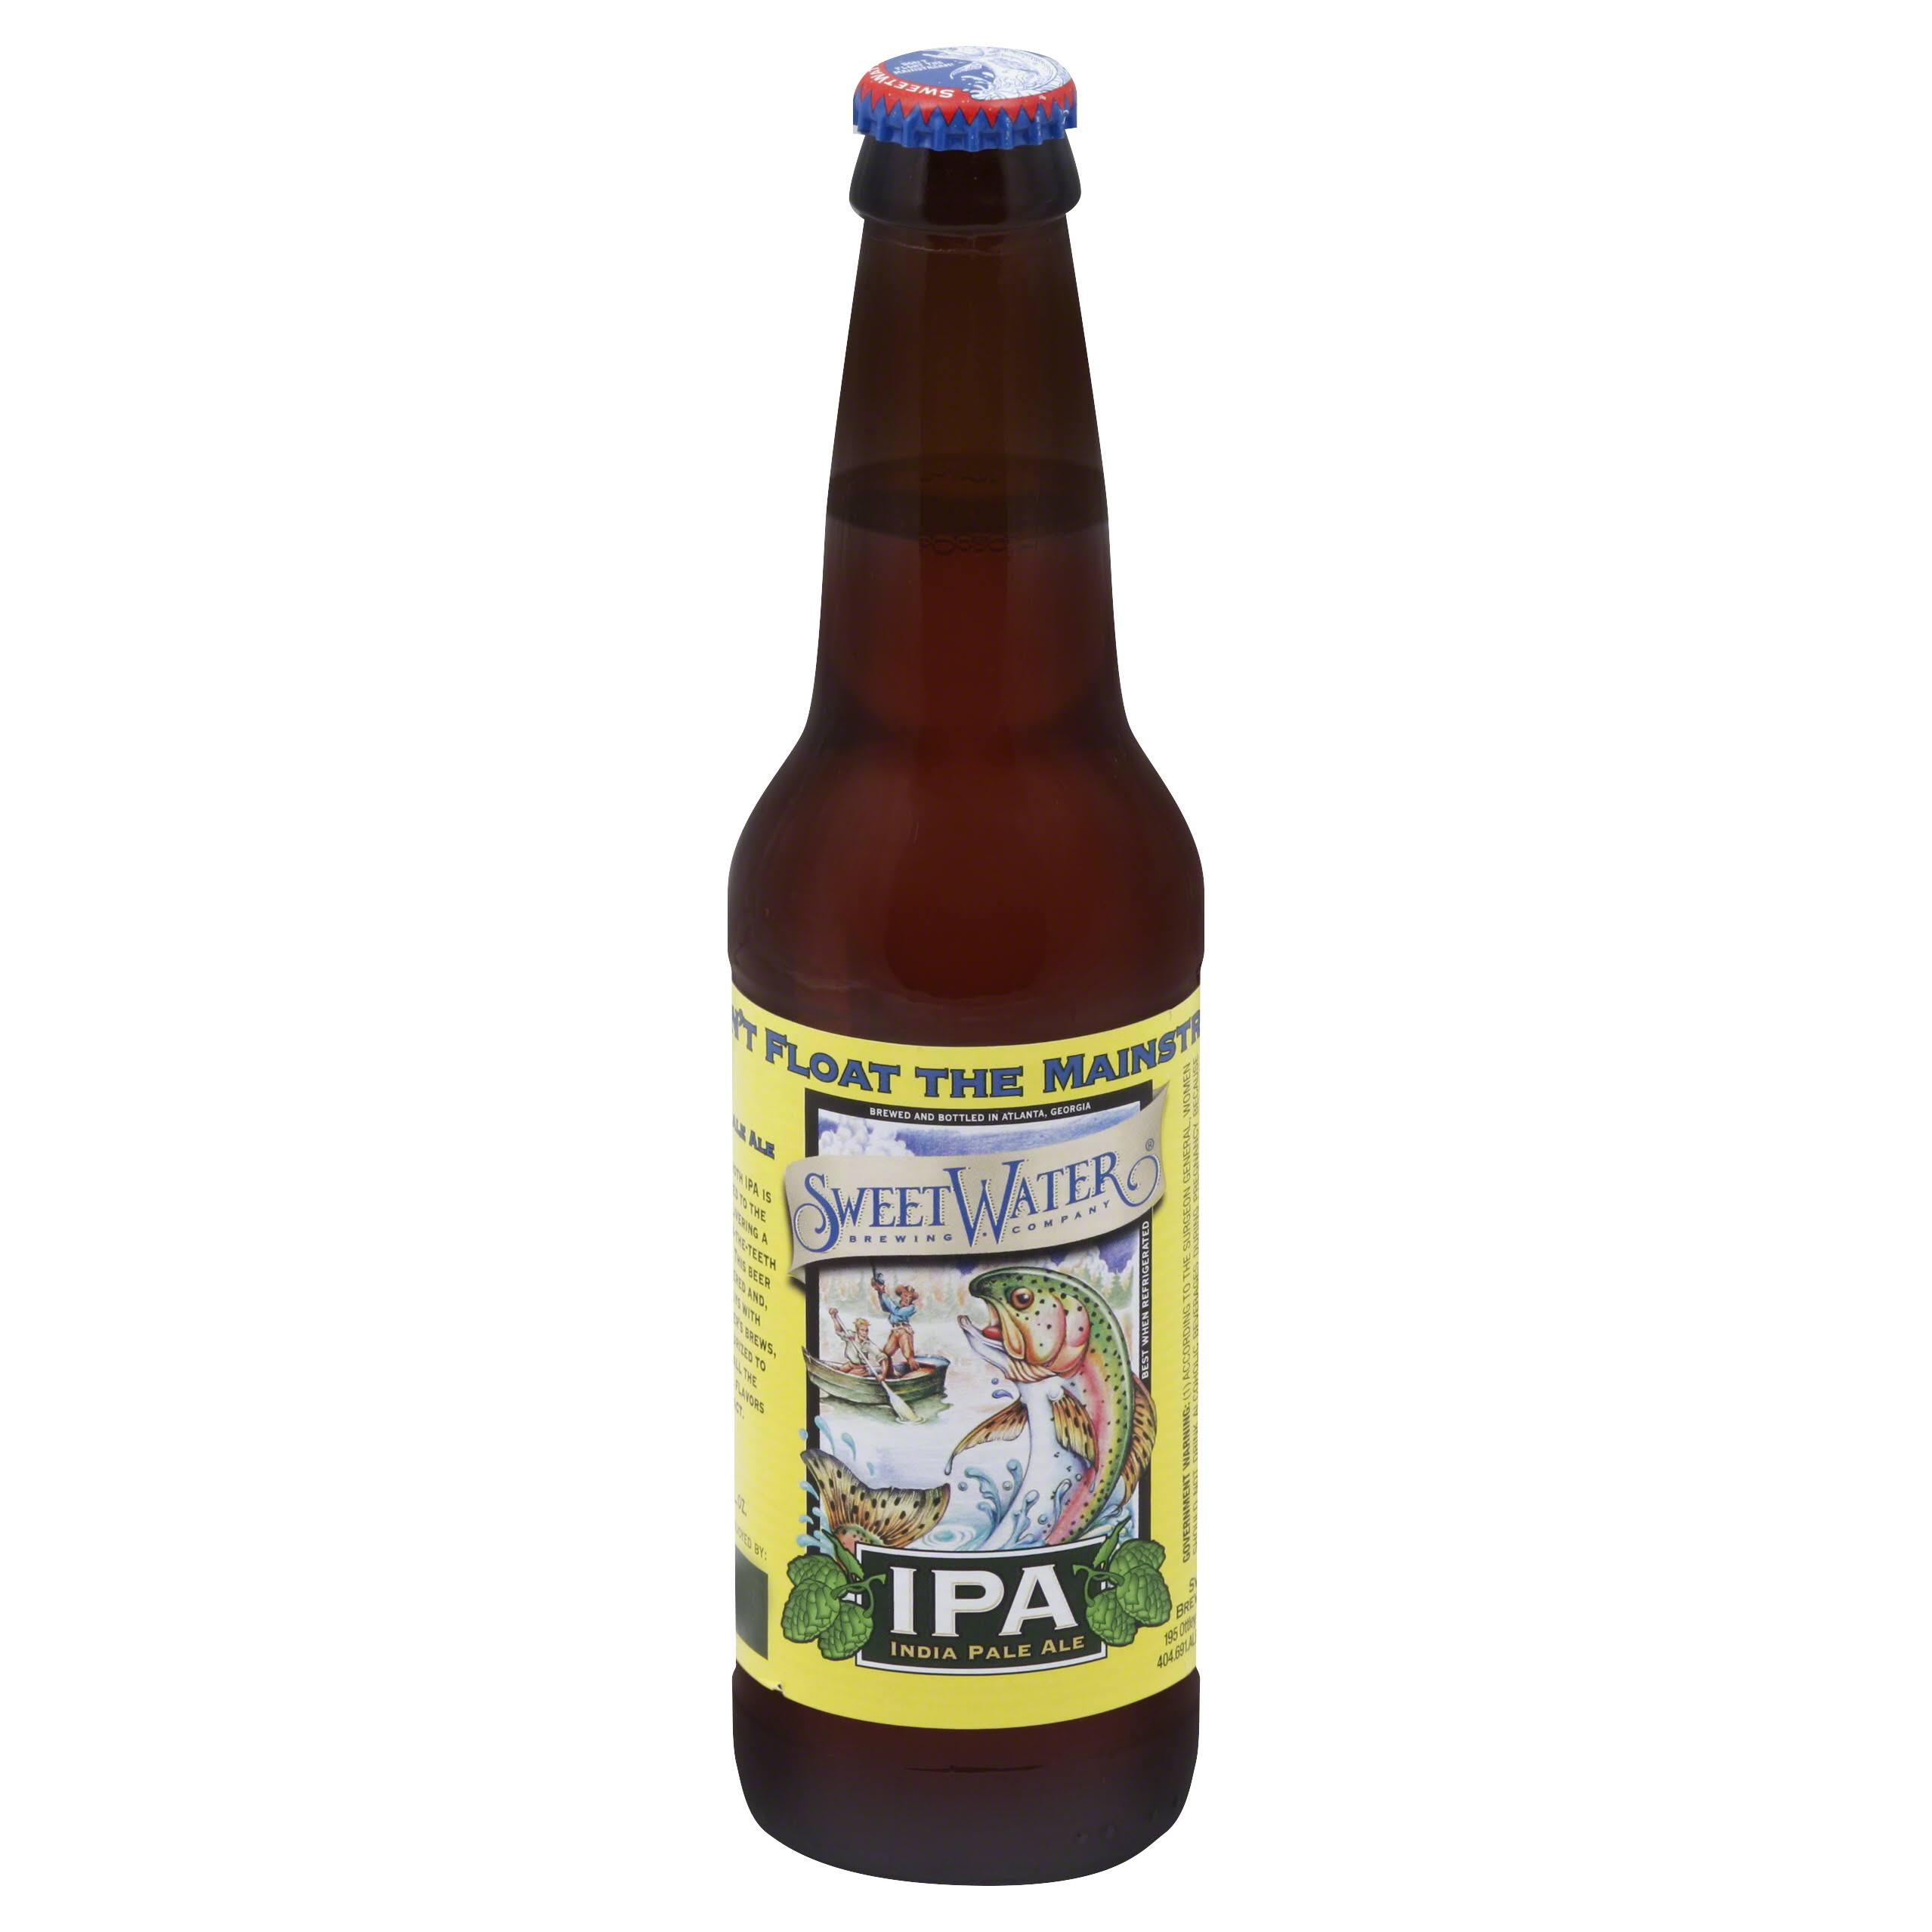 SweetWater IPA, India Pale Ale - 12 fl oz